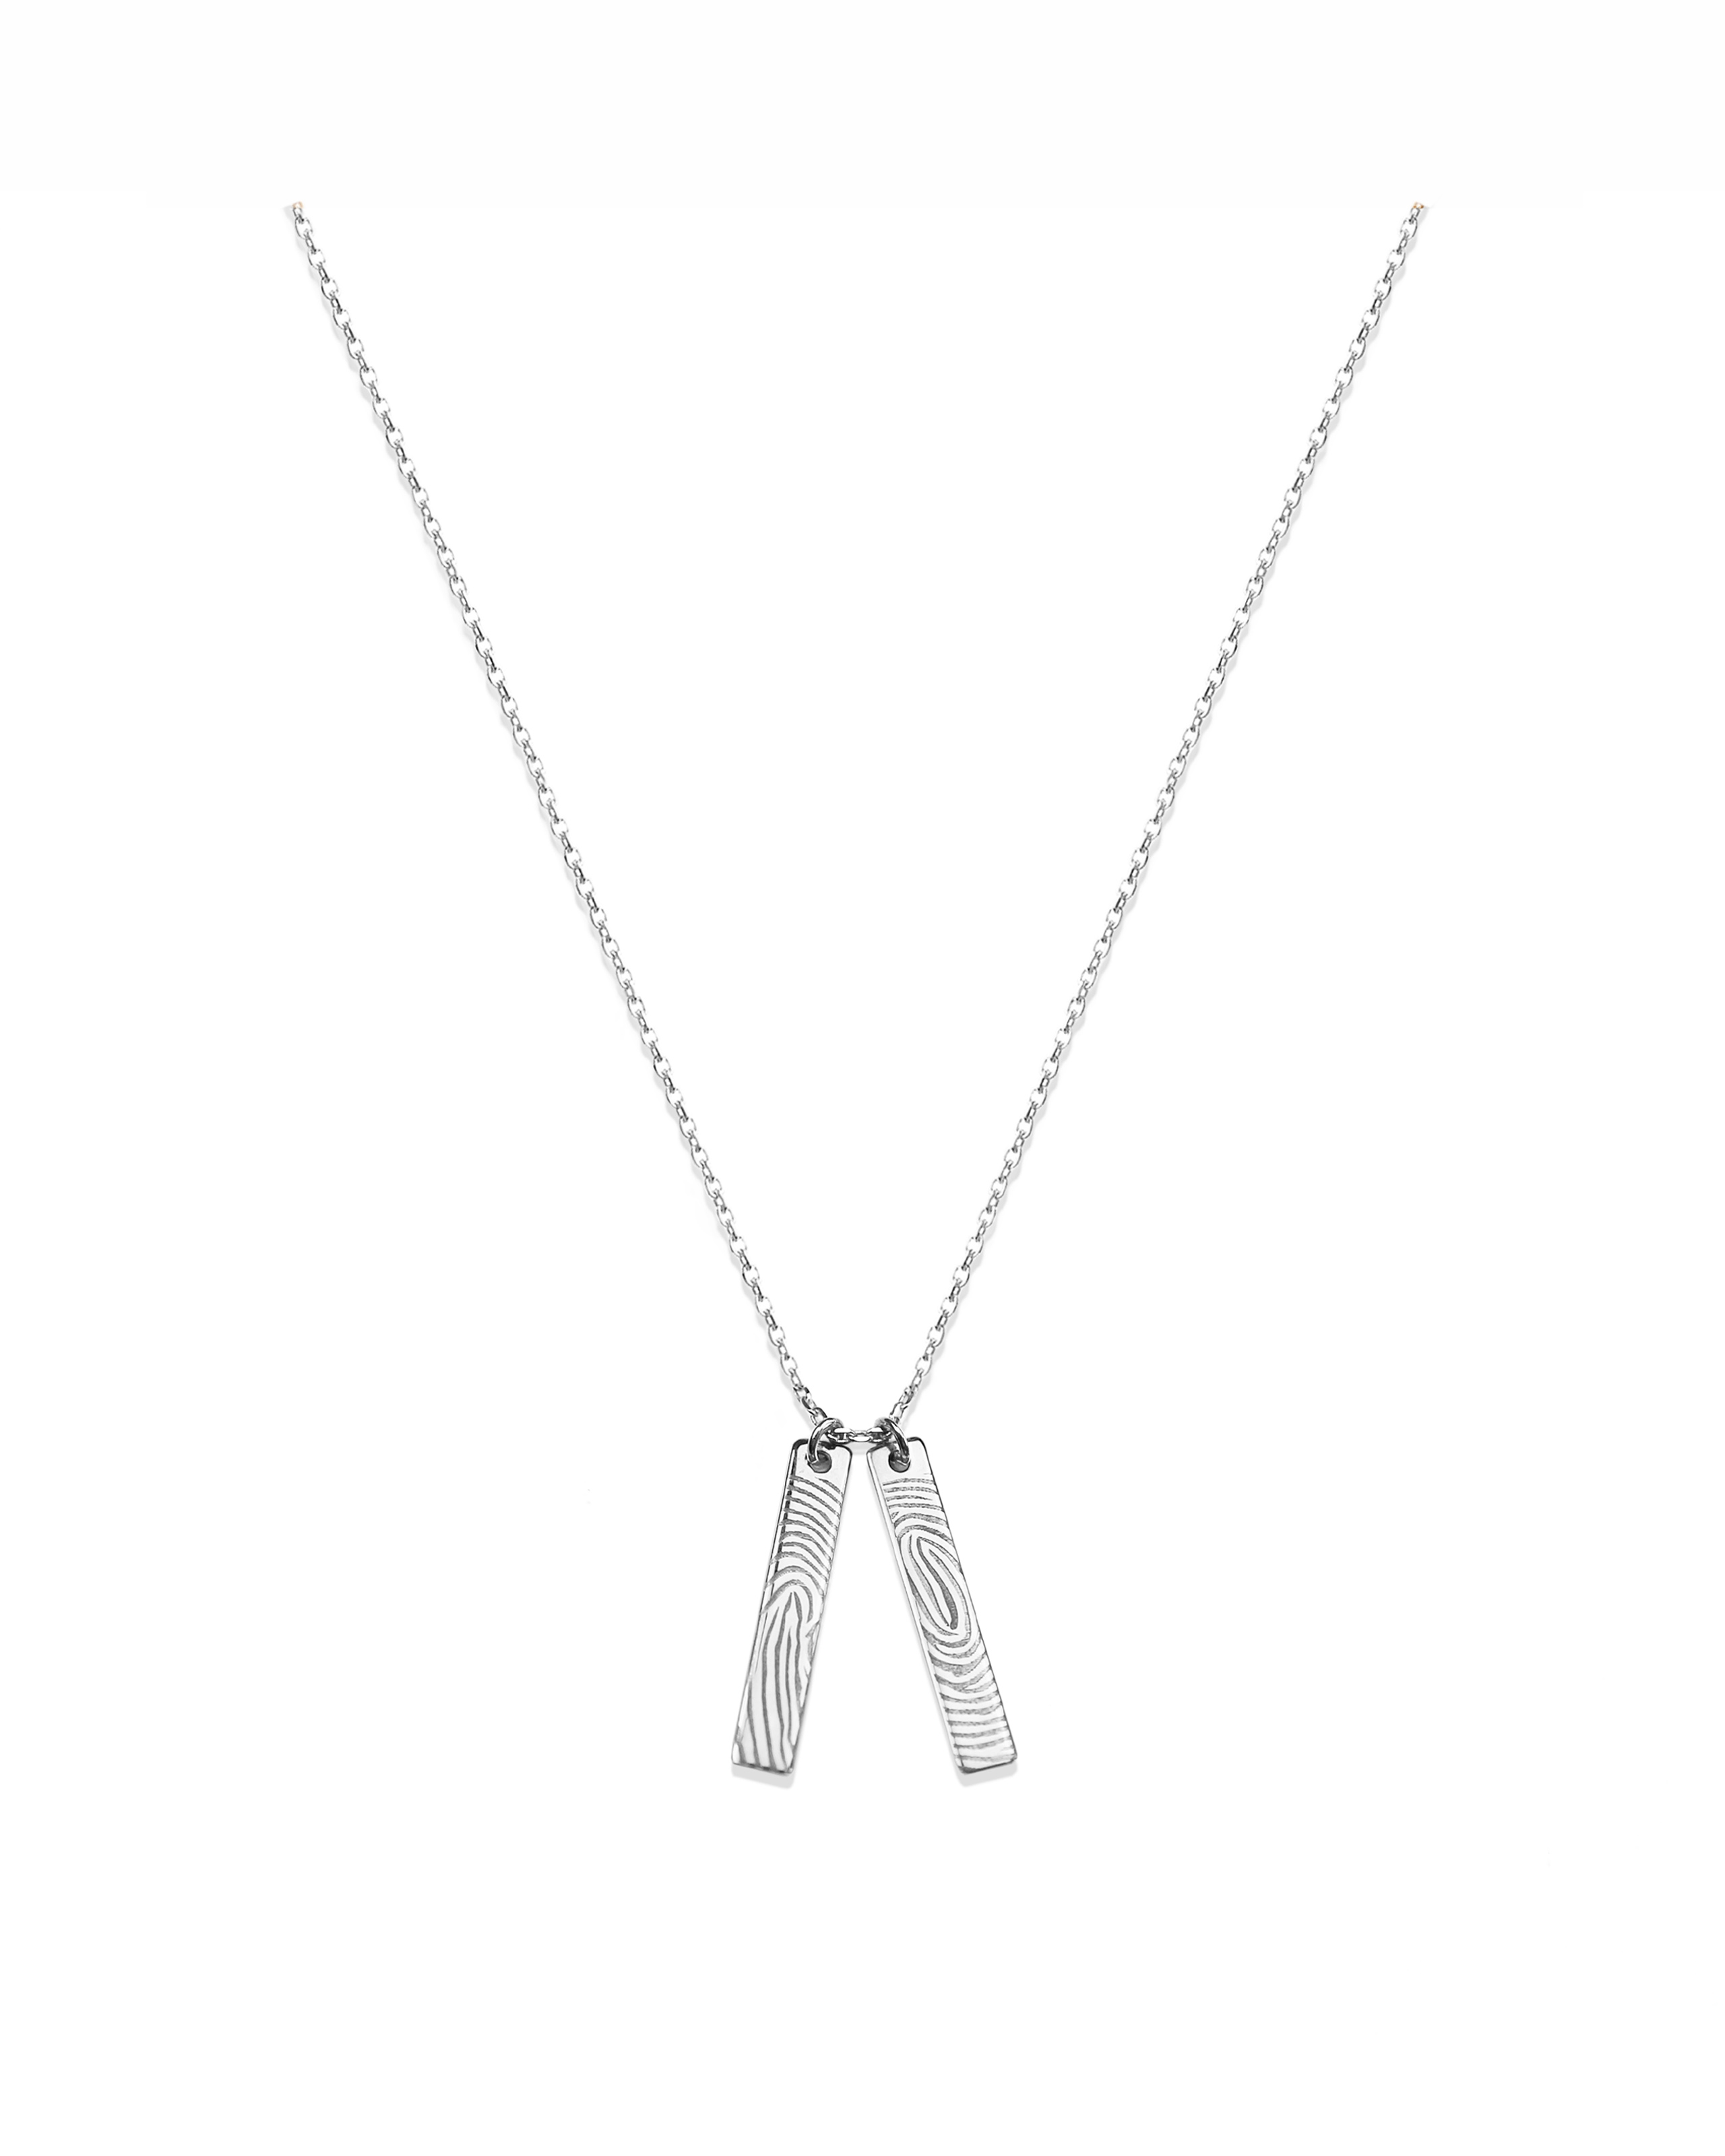 Double Tag Charm Necklace, Silver